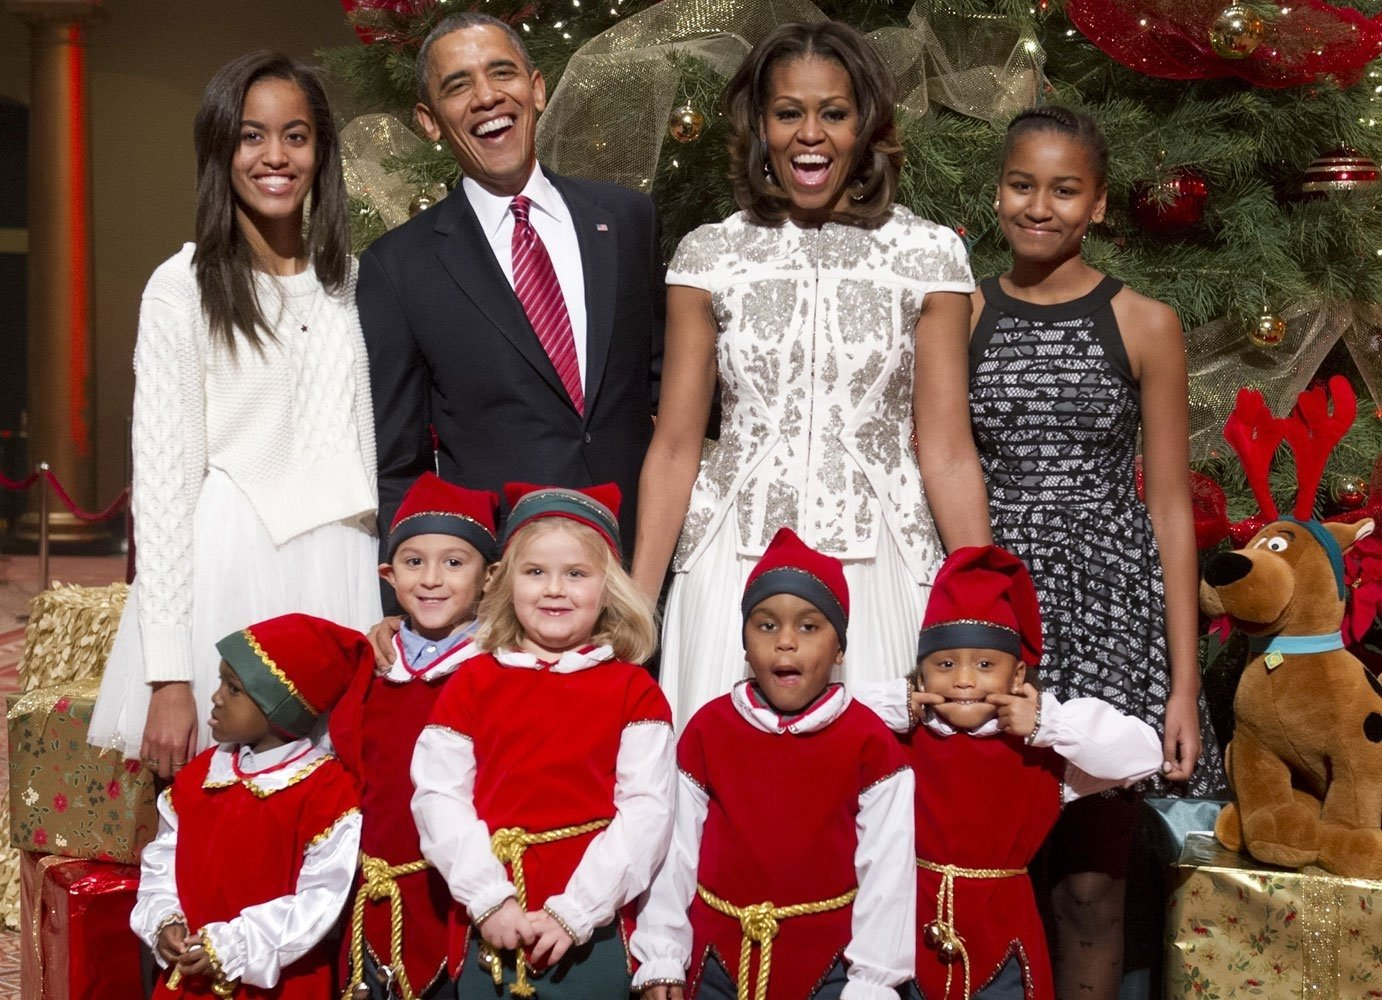 10 Cute Cute Christmas Family Photo Ideas cute first family christmas photo ideas compilation photo and 1